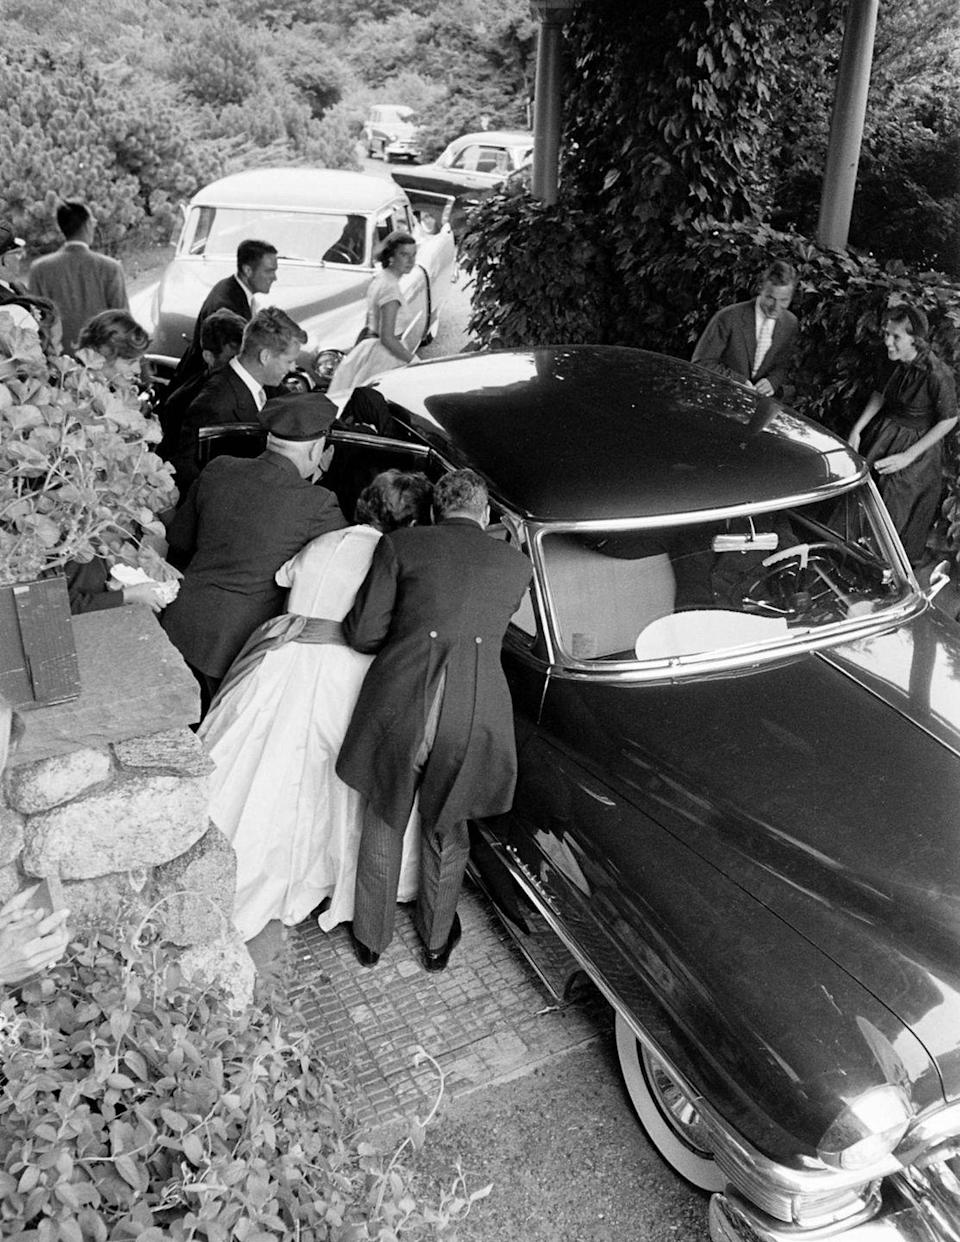 <p>Guests arrived at the farm ready to celebrate the bride and groom.</p>